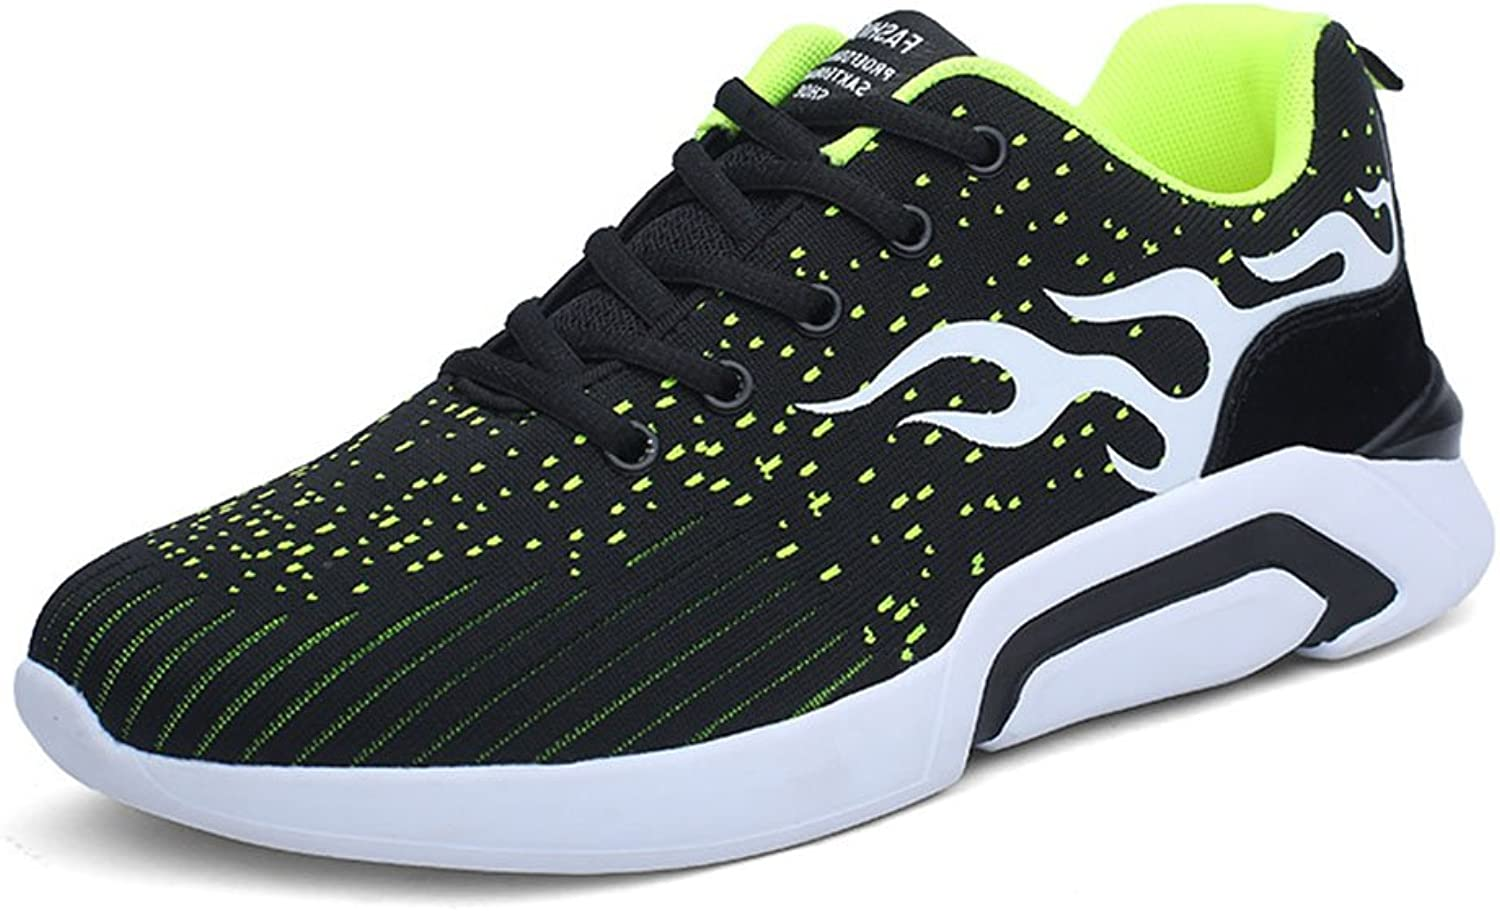 WWJDXZ Trainers Spring and Summer Sports shoes, Breathable Casual shoes, Men's Running shoes (24.5-27.0cm)